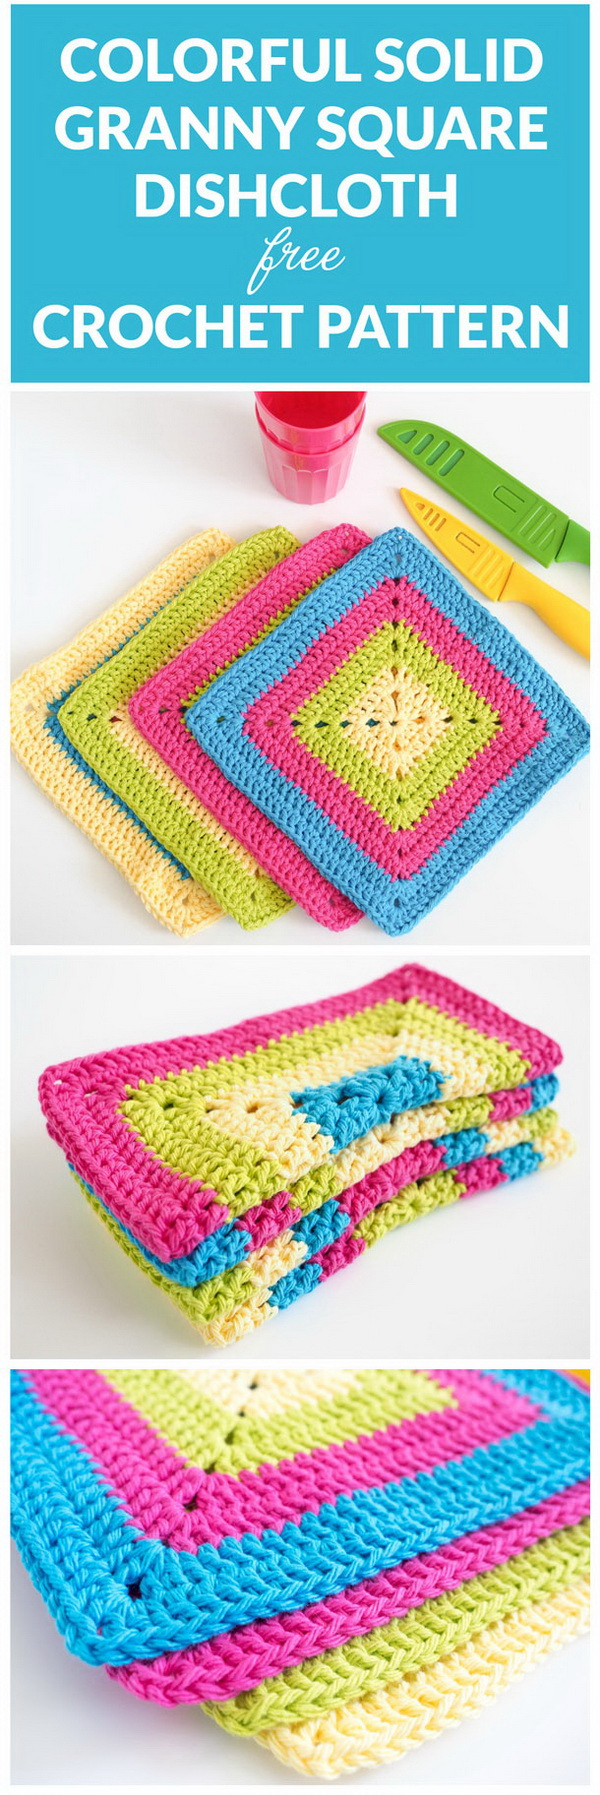 Colorful Solid Crochet Granny Square Dishcloth. Crochet dishcloth pattern is a fun way to use up scrap yarn and dress up your kitchen at the same time! These colorful solid crochet granny square dishclothes are  perfect for beginners. It will not only be a fun way to get your dishes clean, but also add much more charm to your kitchen.